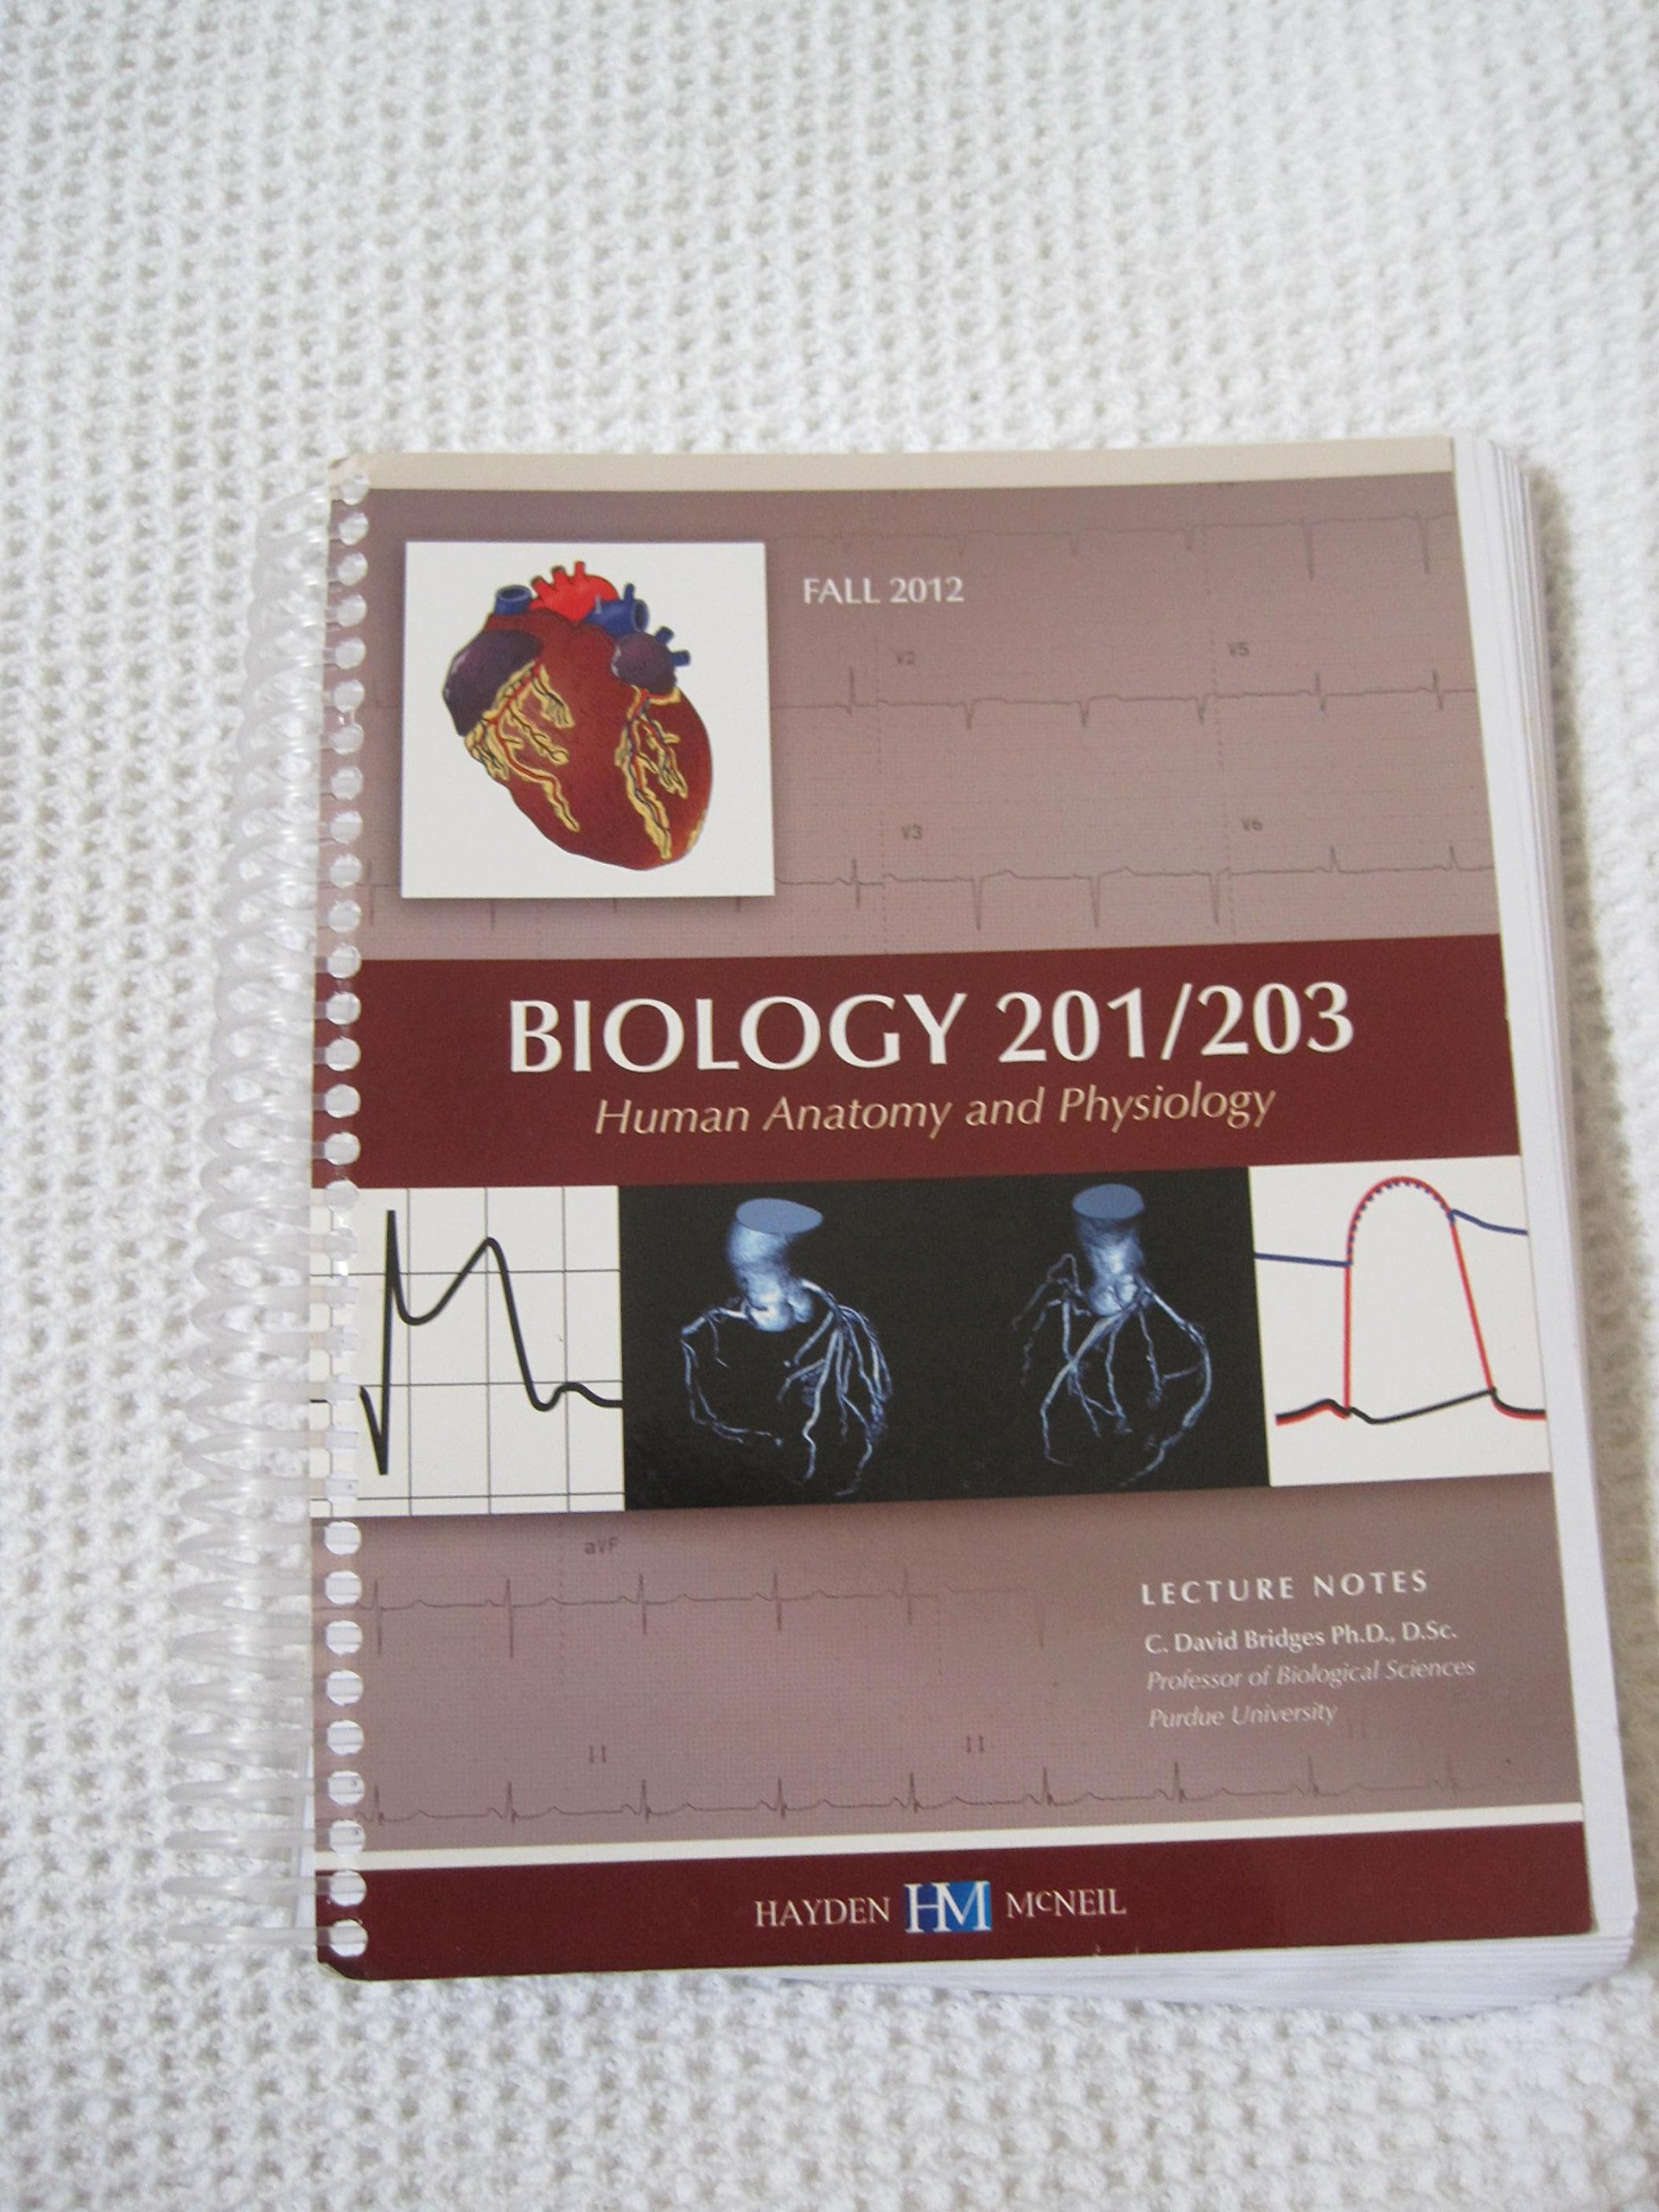 Encantador Human Anatomy And Physiology Lecture Notes Imagen ...